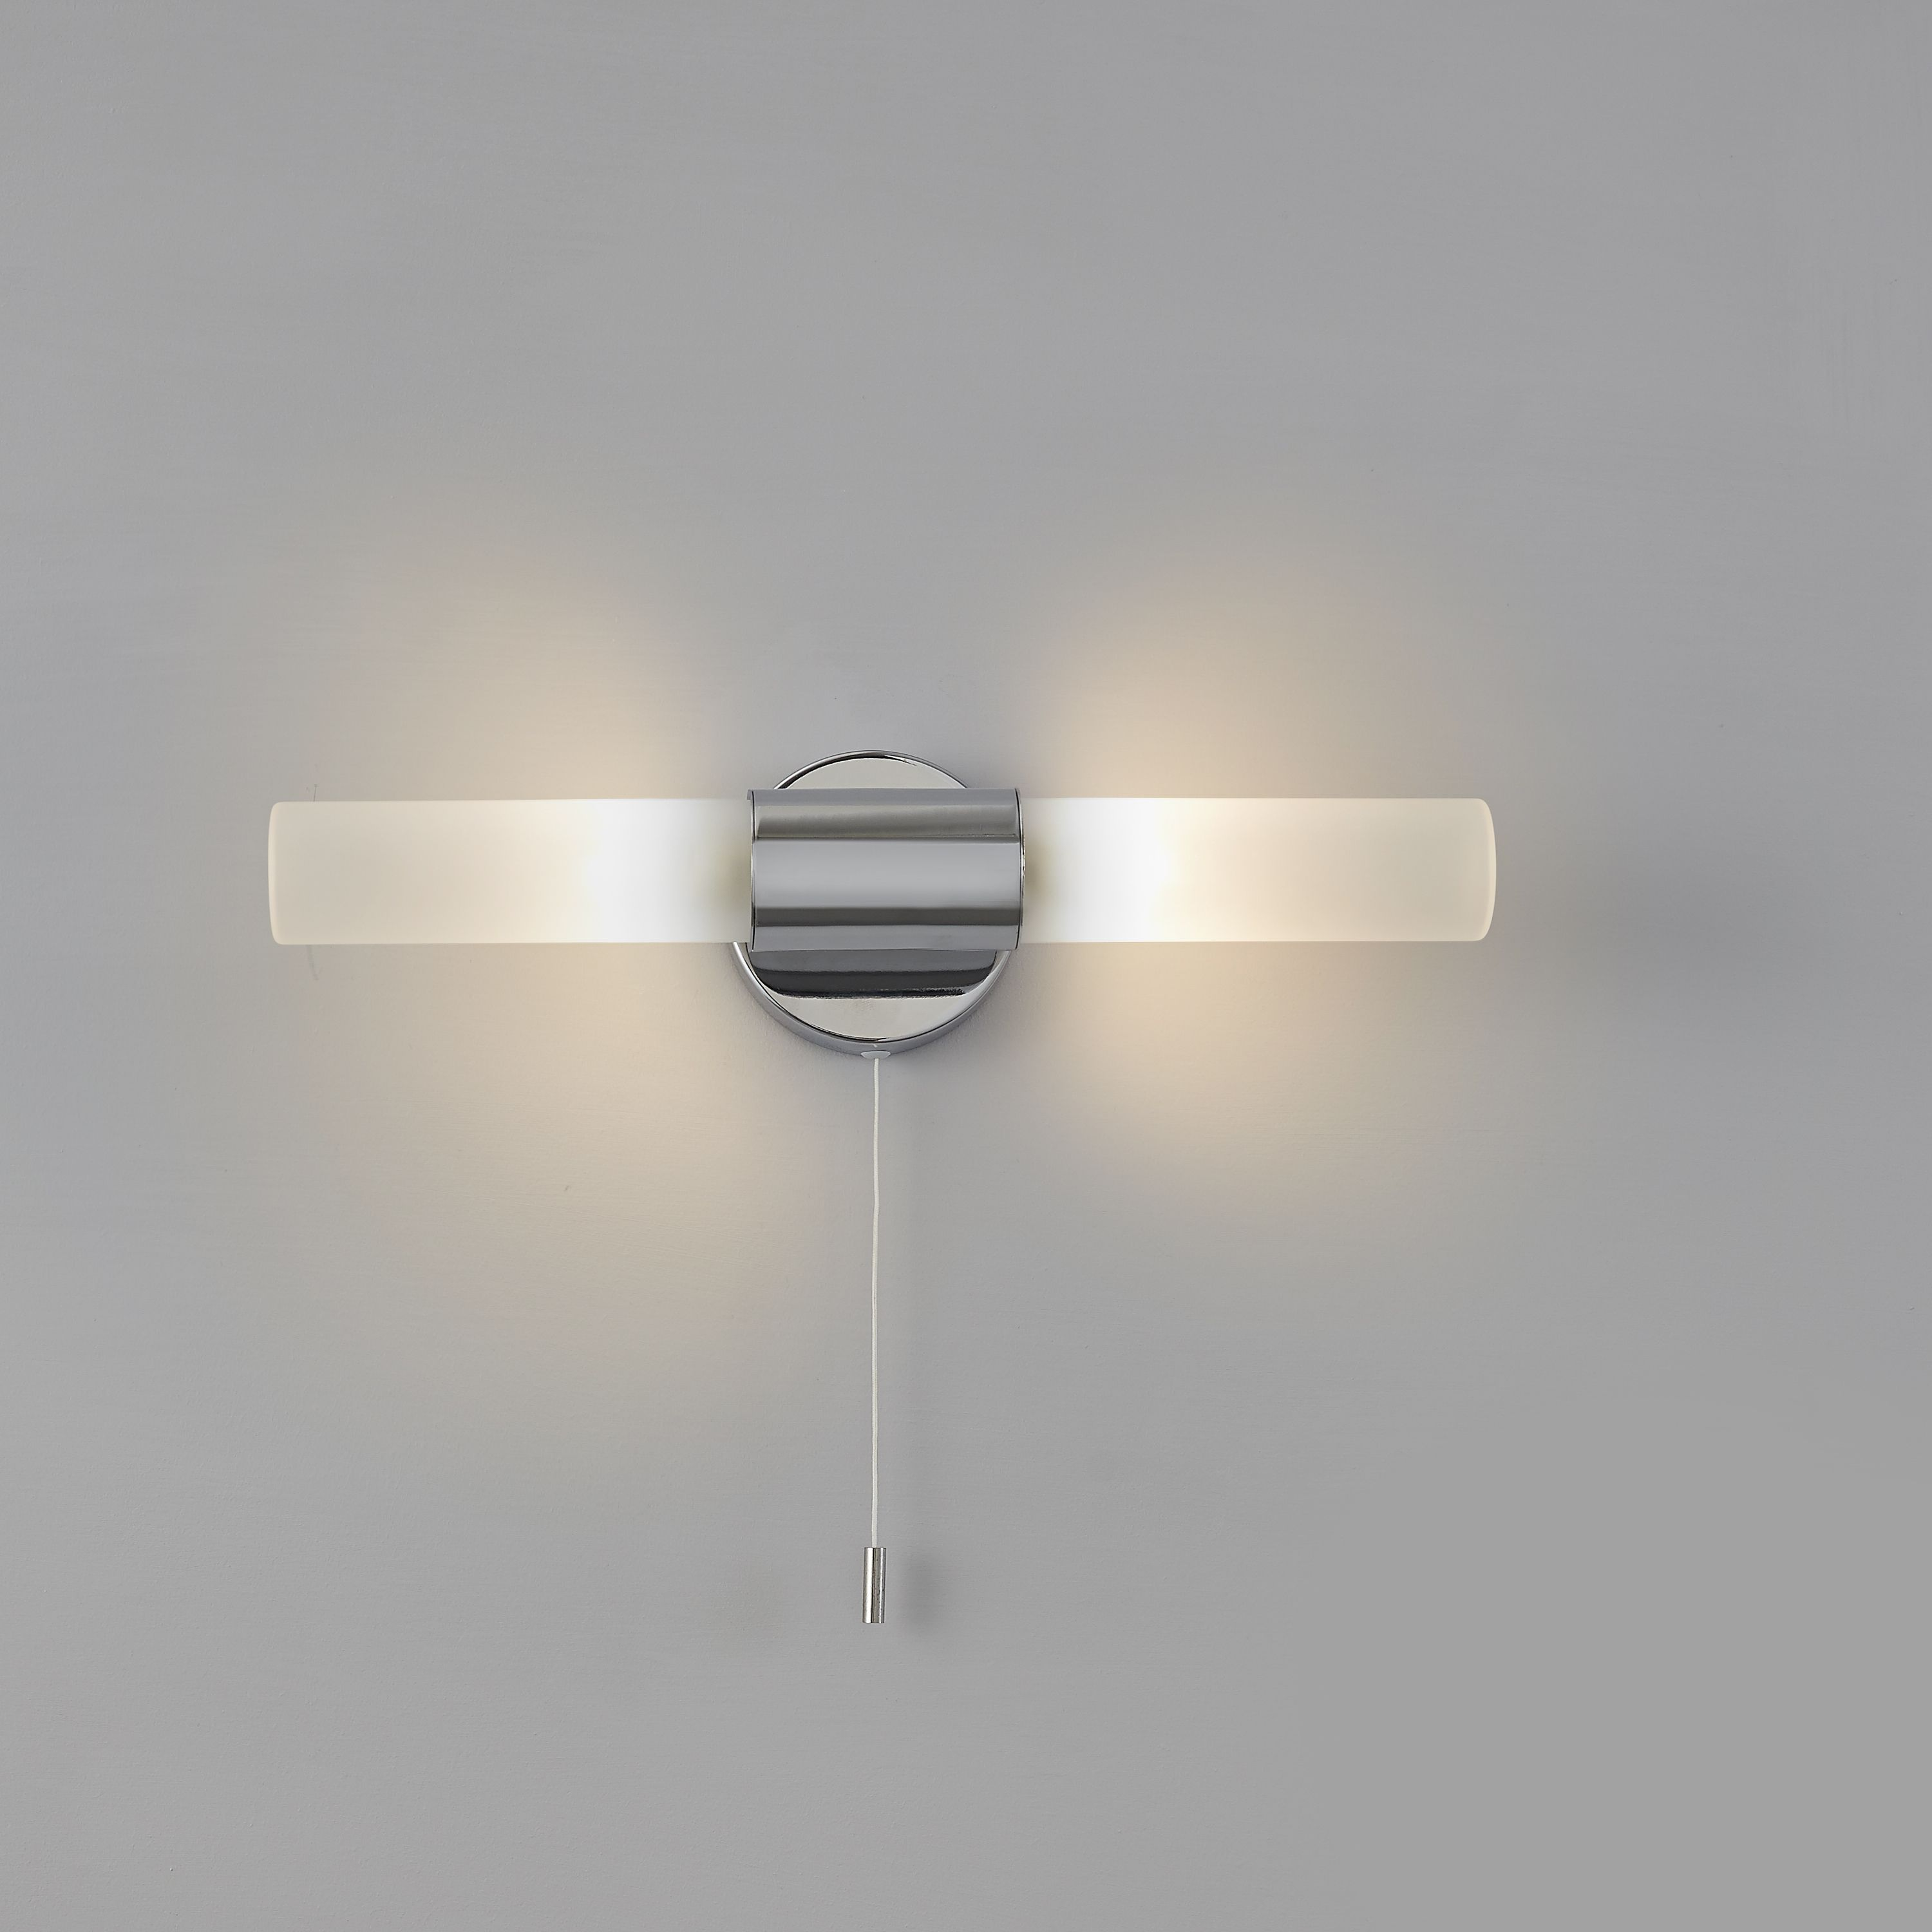 Float Chrome Effect Double Bathroom Wall Light Departments Diy At B Q